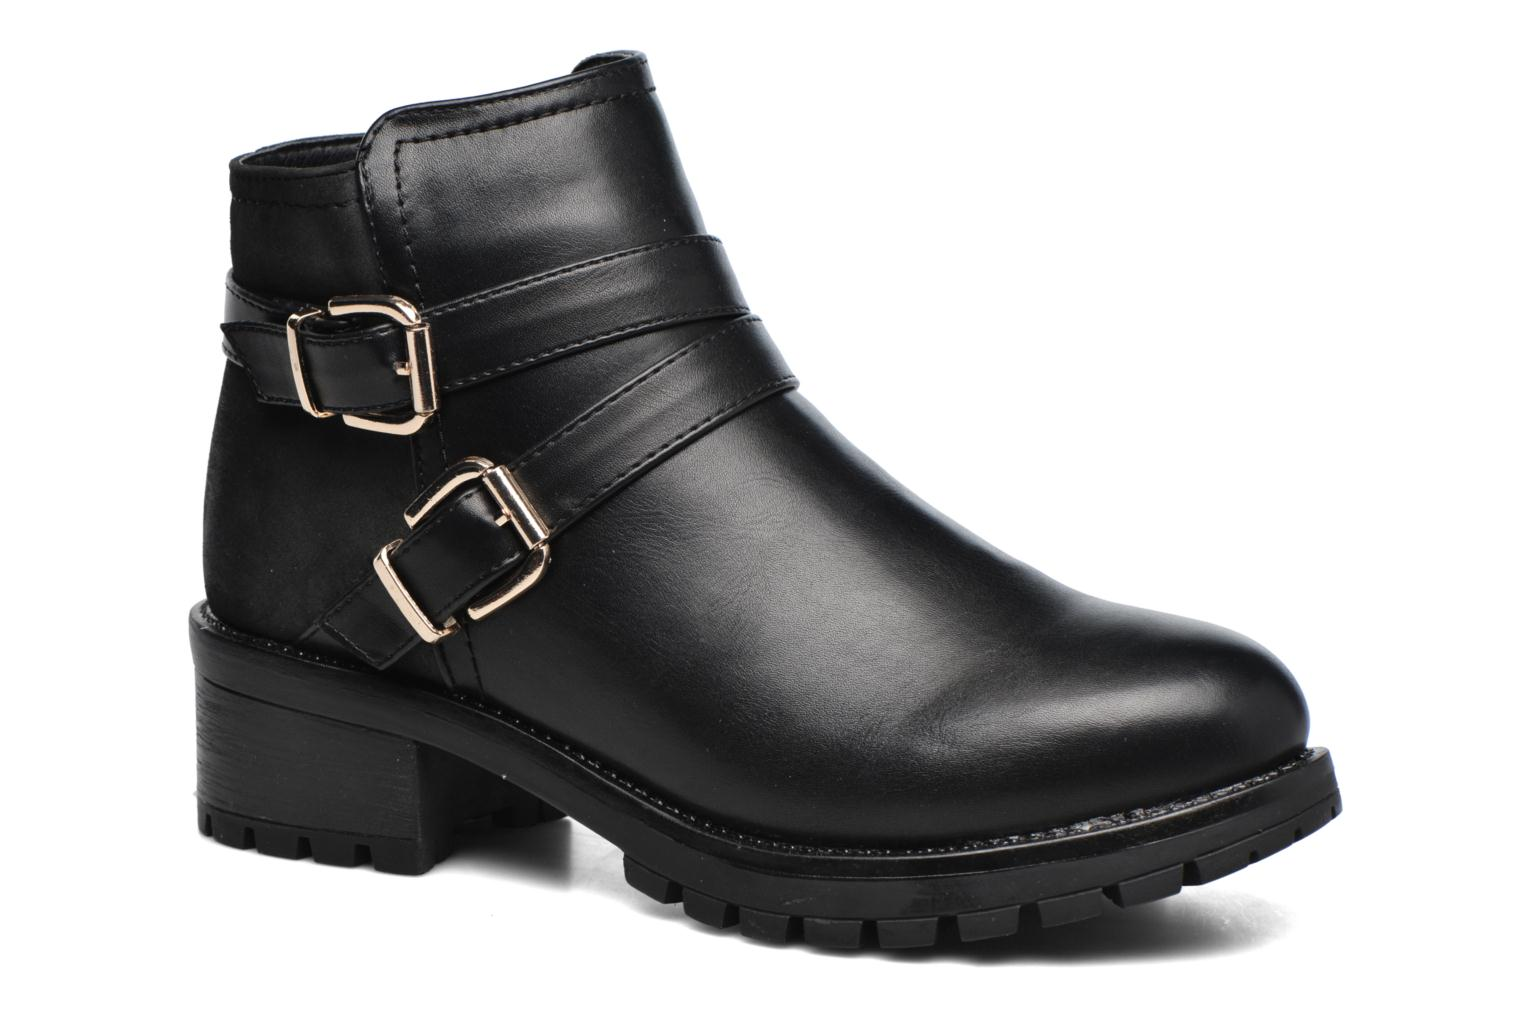 Marques Chaussure femme Pieces femme Pammi boot Black